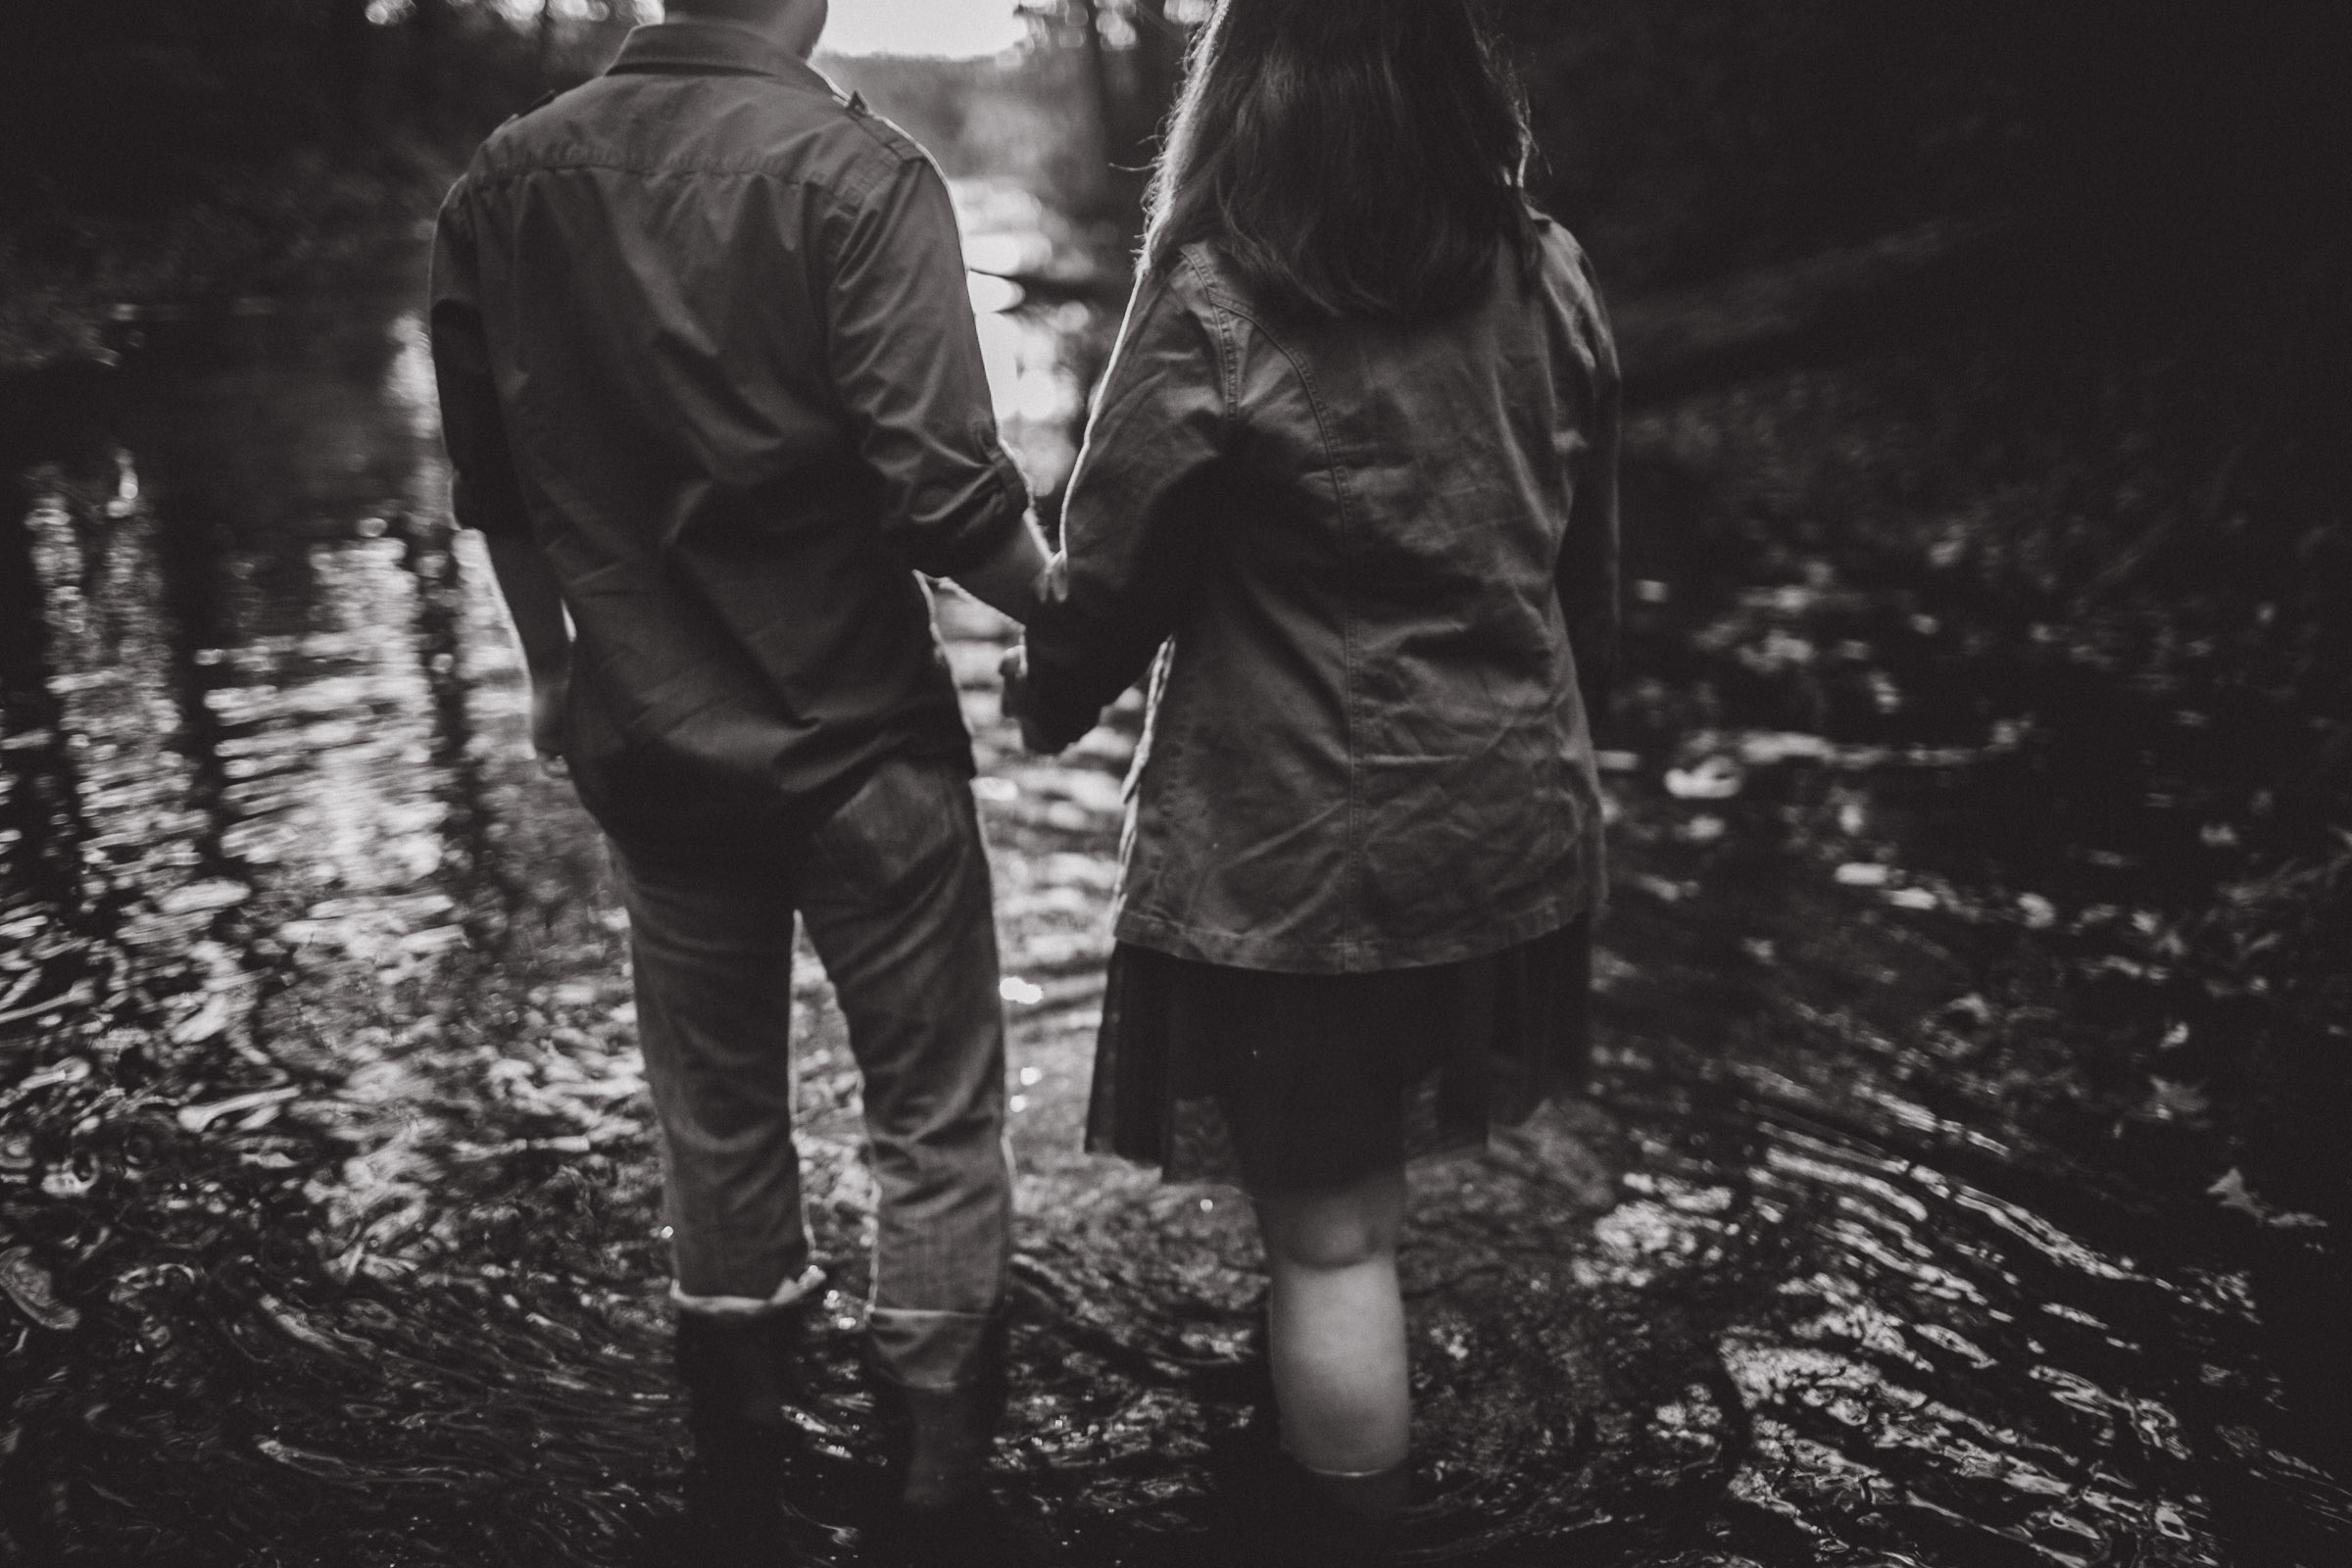 couple walking through water in creek, black and white portrait